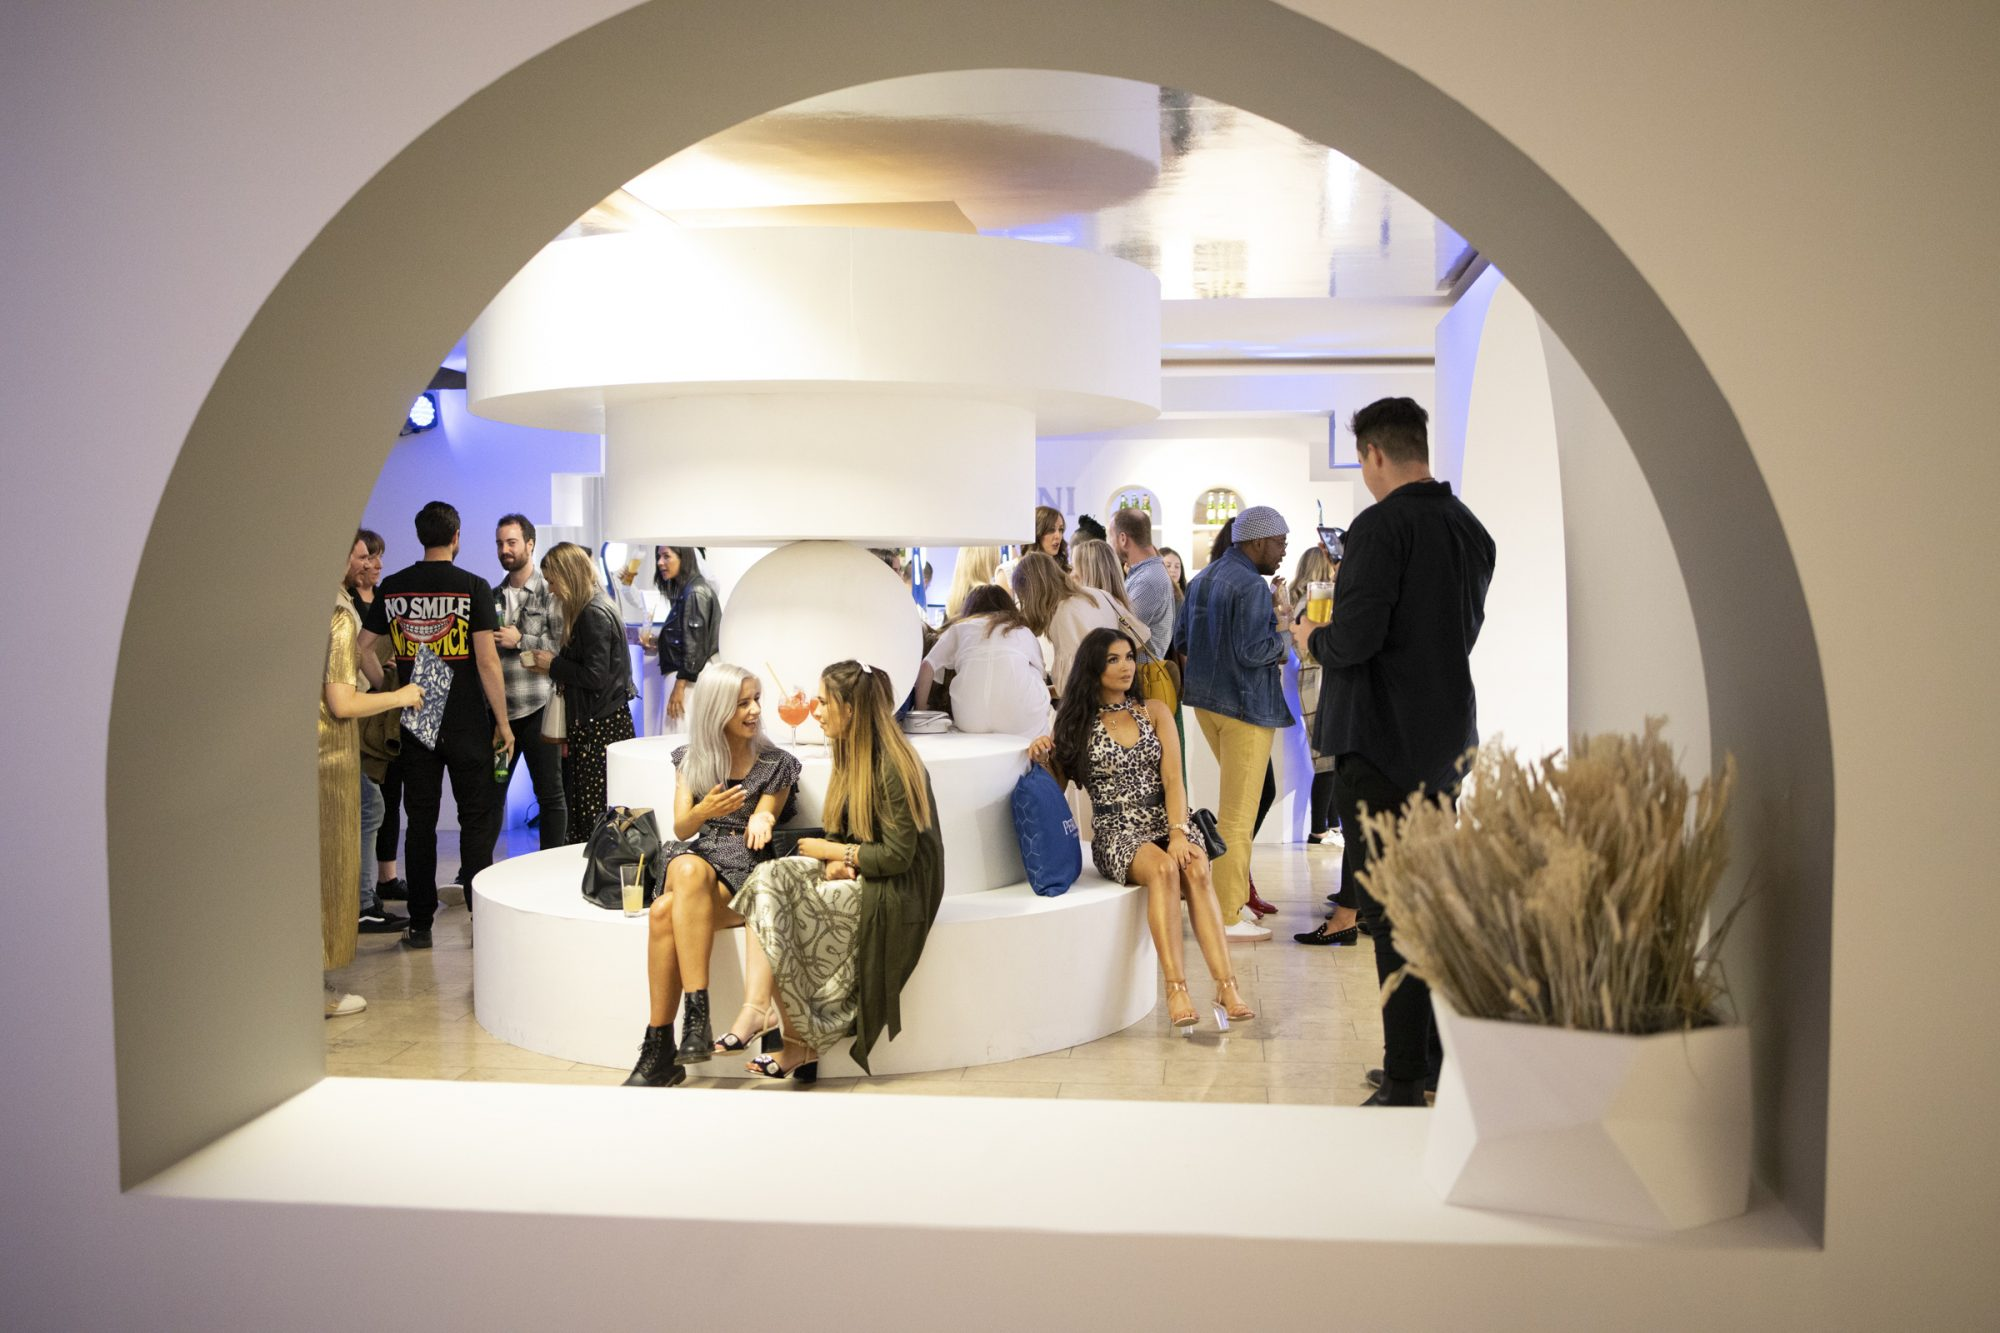 The House of Peroni returns to Dublin this summer for its fourth instalment from Thursday, 22nd August, 2019, until Sunday, 1st September, 2019. Part of a global House of Peroni series.